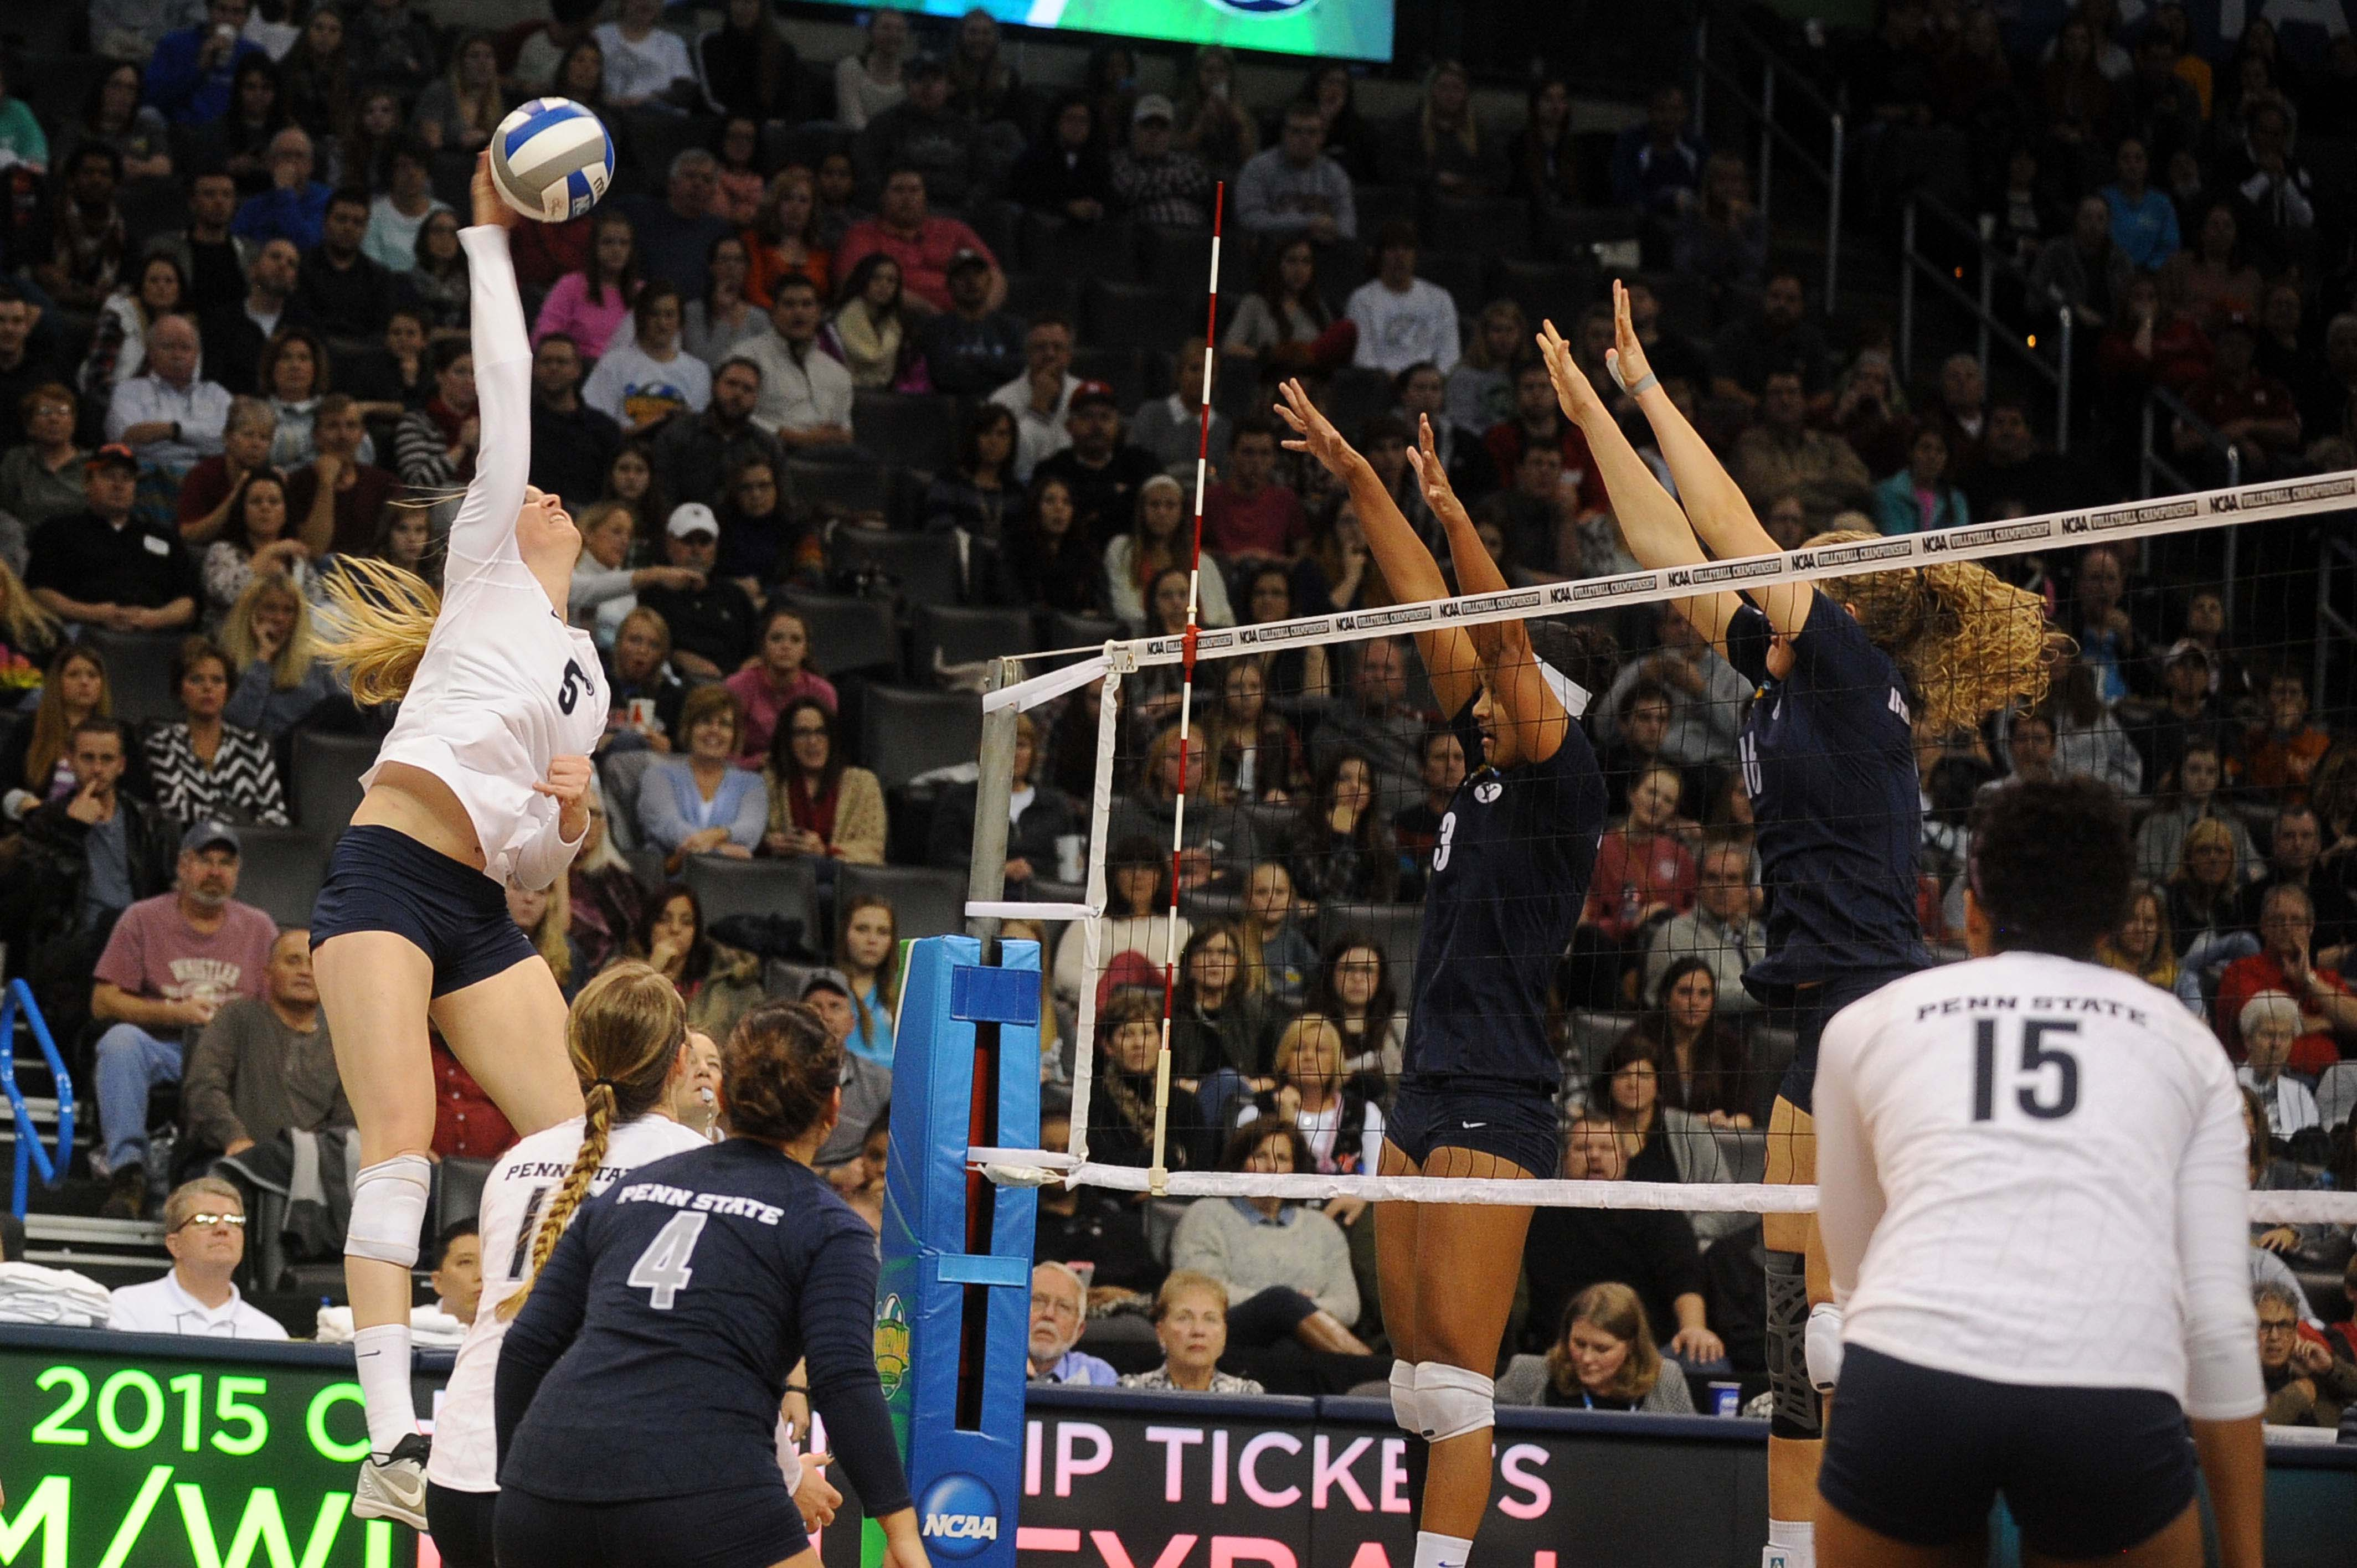 Frantti led the team in kills the first weekend of the tourney.